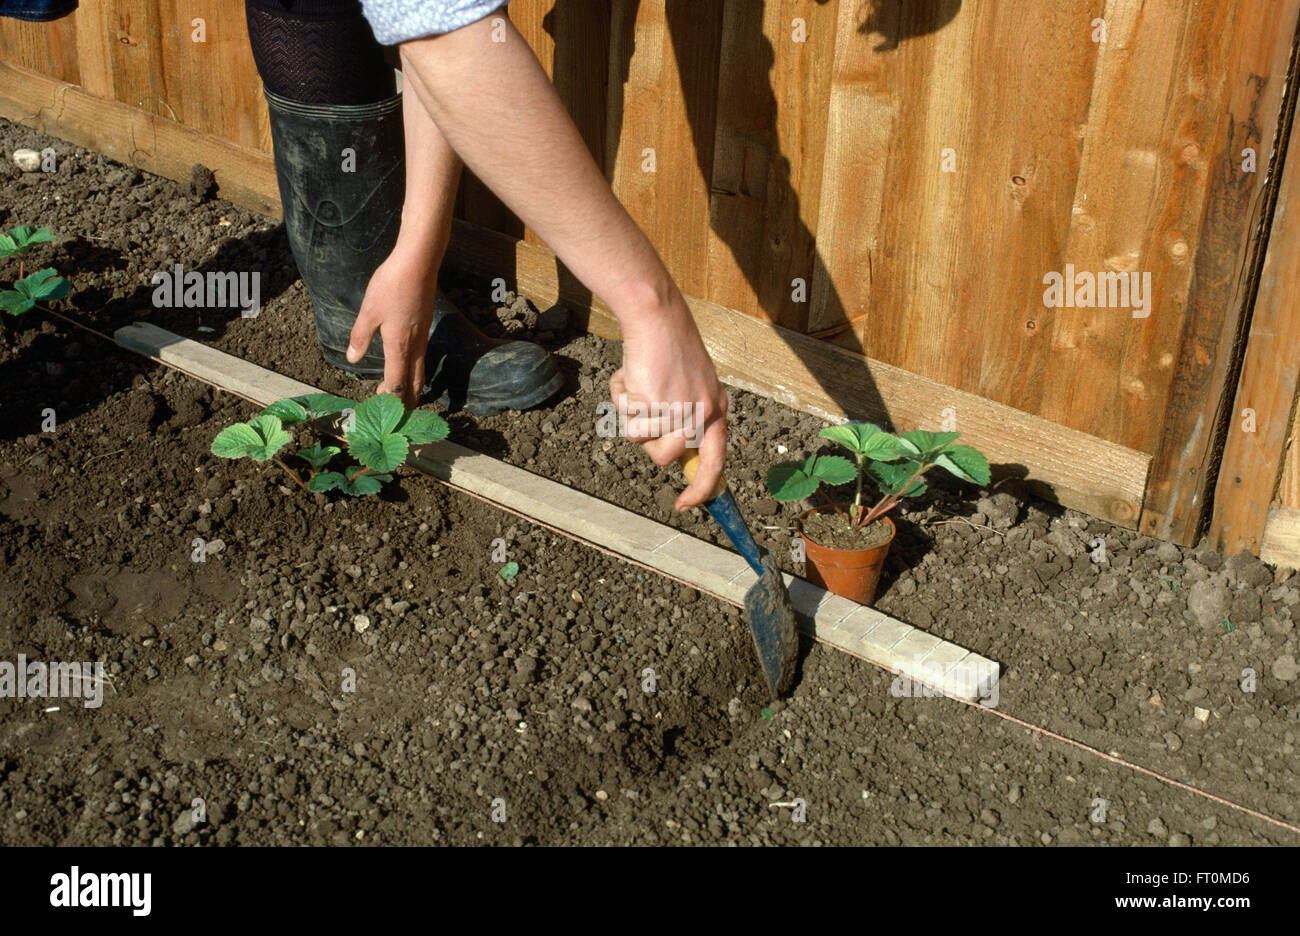 Close-up of a gardener using a wooden stake to mark out bed before planting strawberries - Stock Image